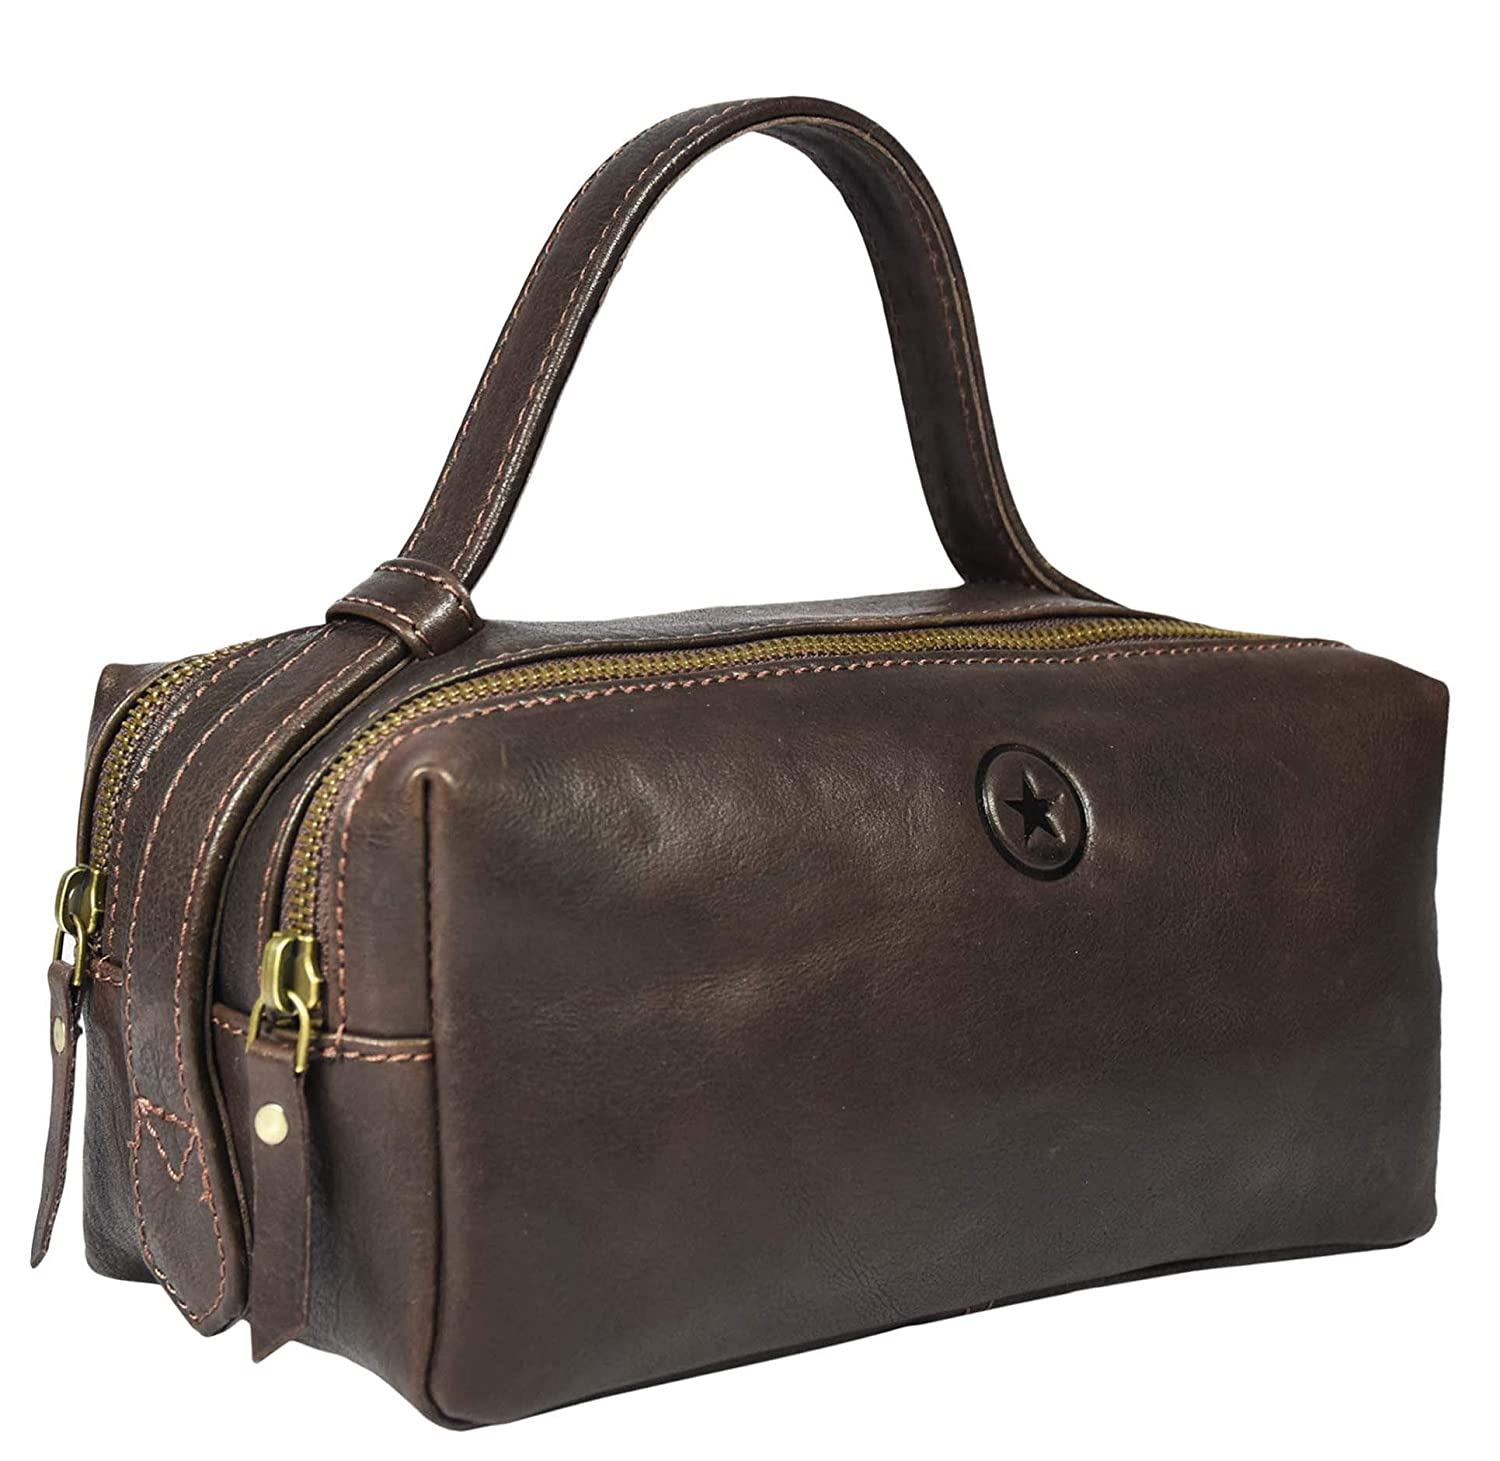 Leather Toiletry Bag for Men Dual Zipper with Handle and 2 Compartment Walnut